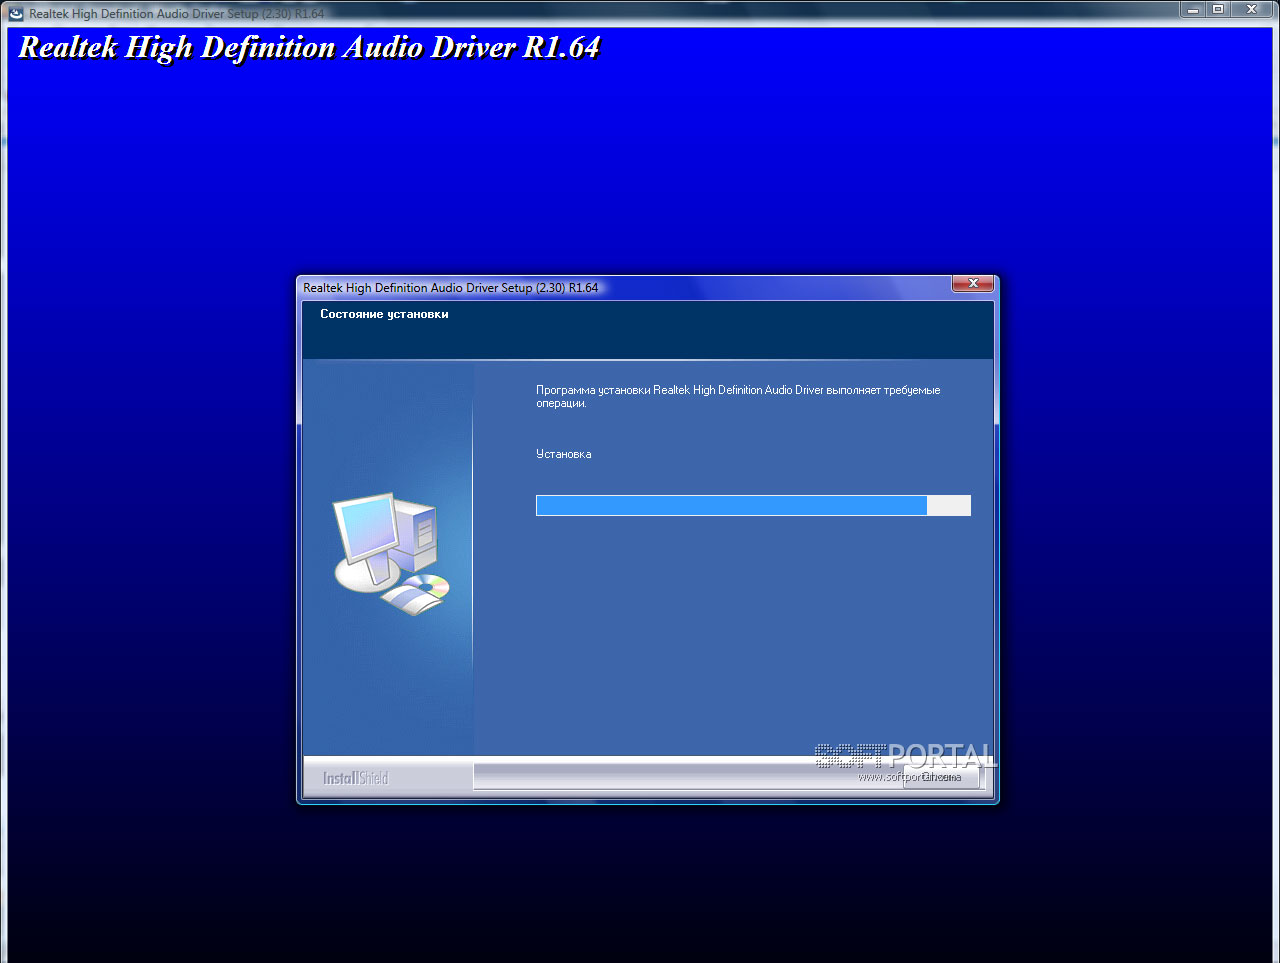 Realtek hd audio driver free download for windows 10, 7, 8/8. 1 (64.